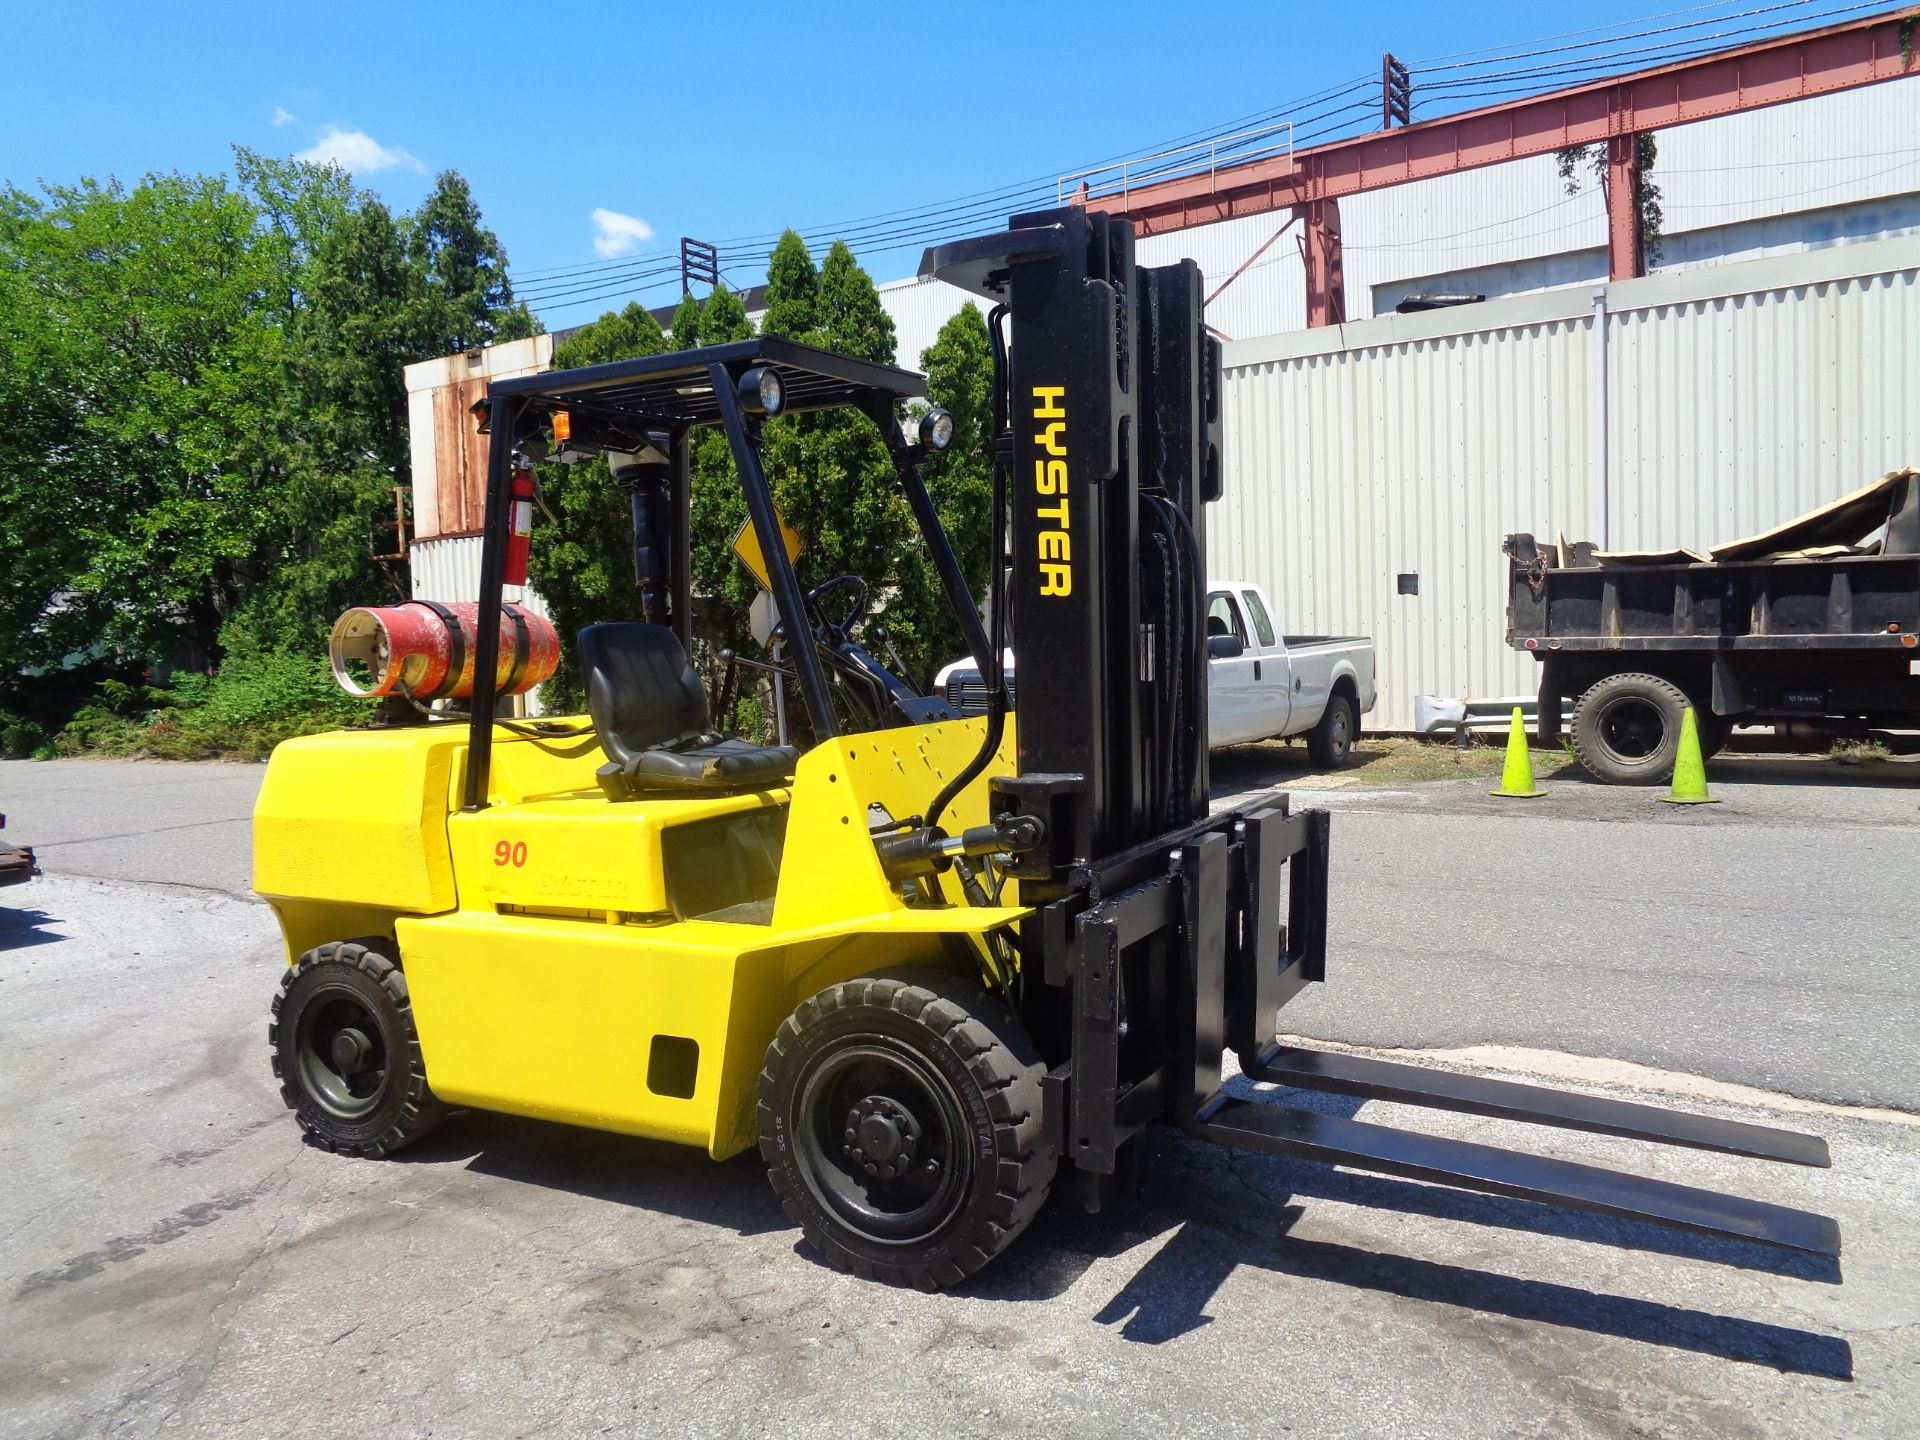 Hyster H90XLS Forklift 9,000 lbs - Image 8 of 13